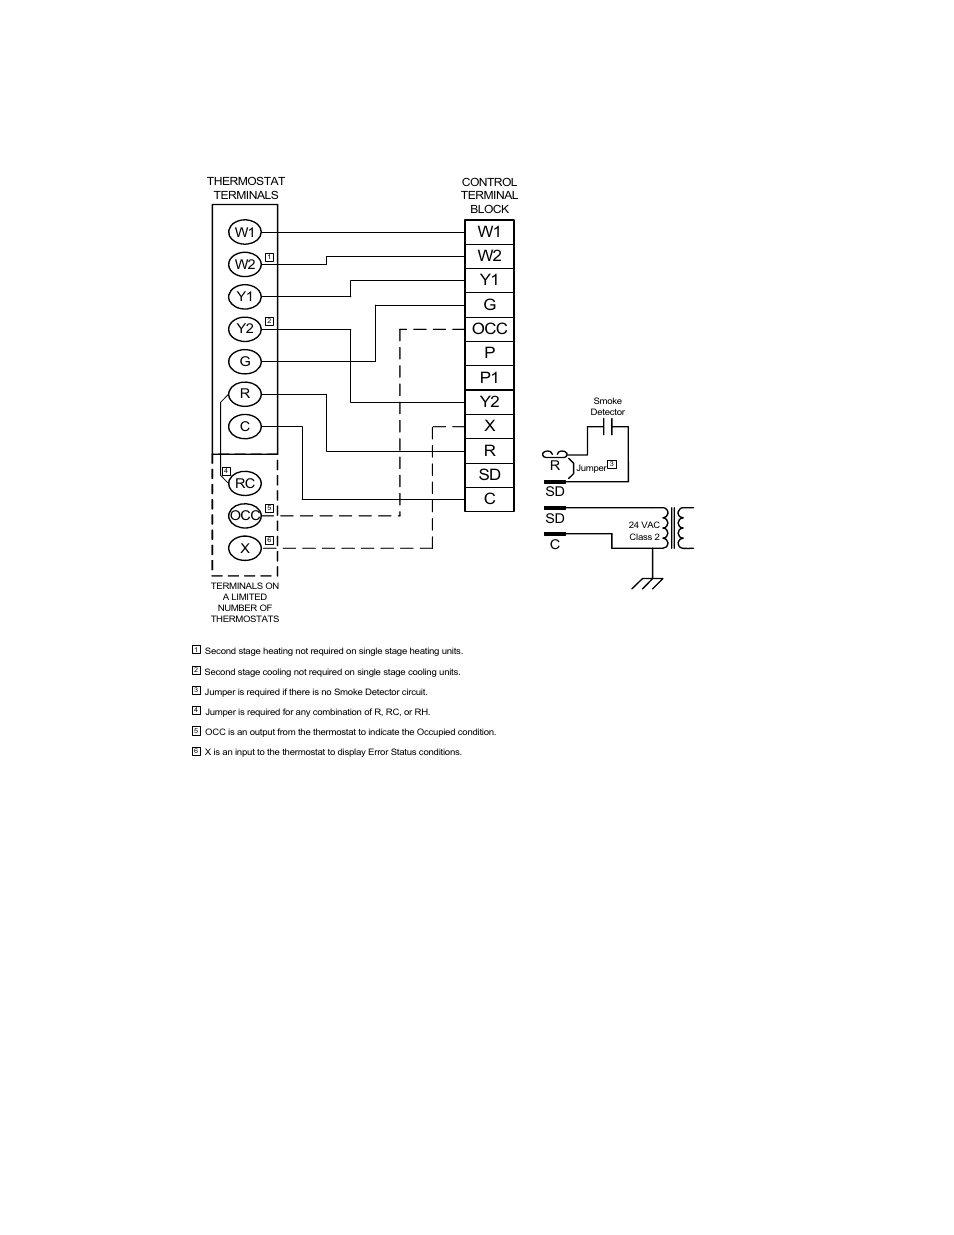 medium resolution of typical simplicity figure 13 typical simplicity york dj 300 user manual page 36 40